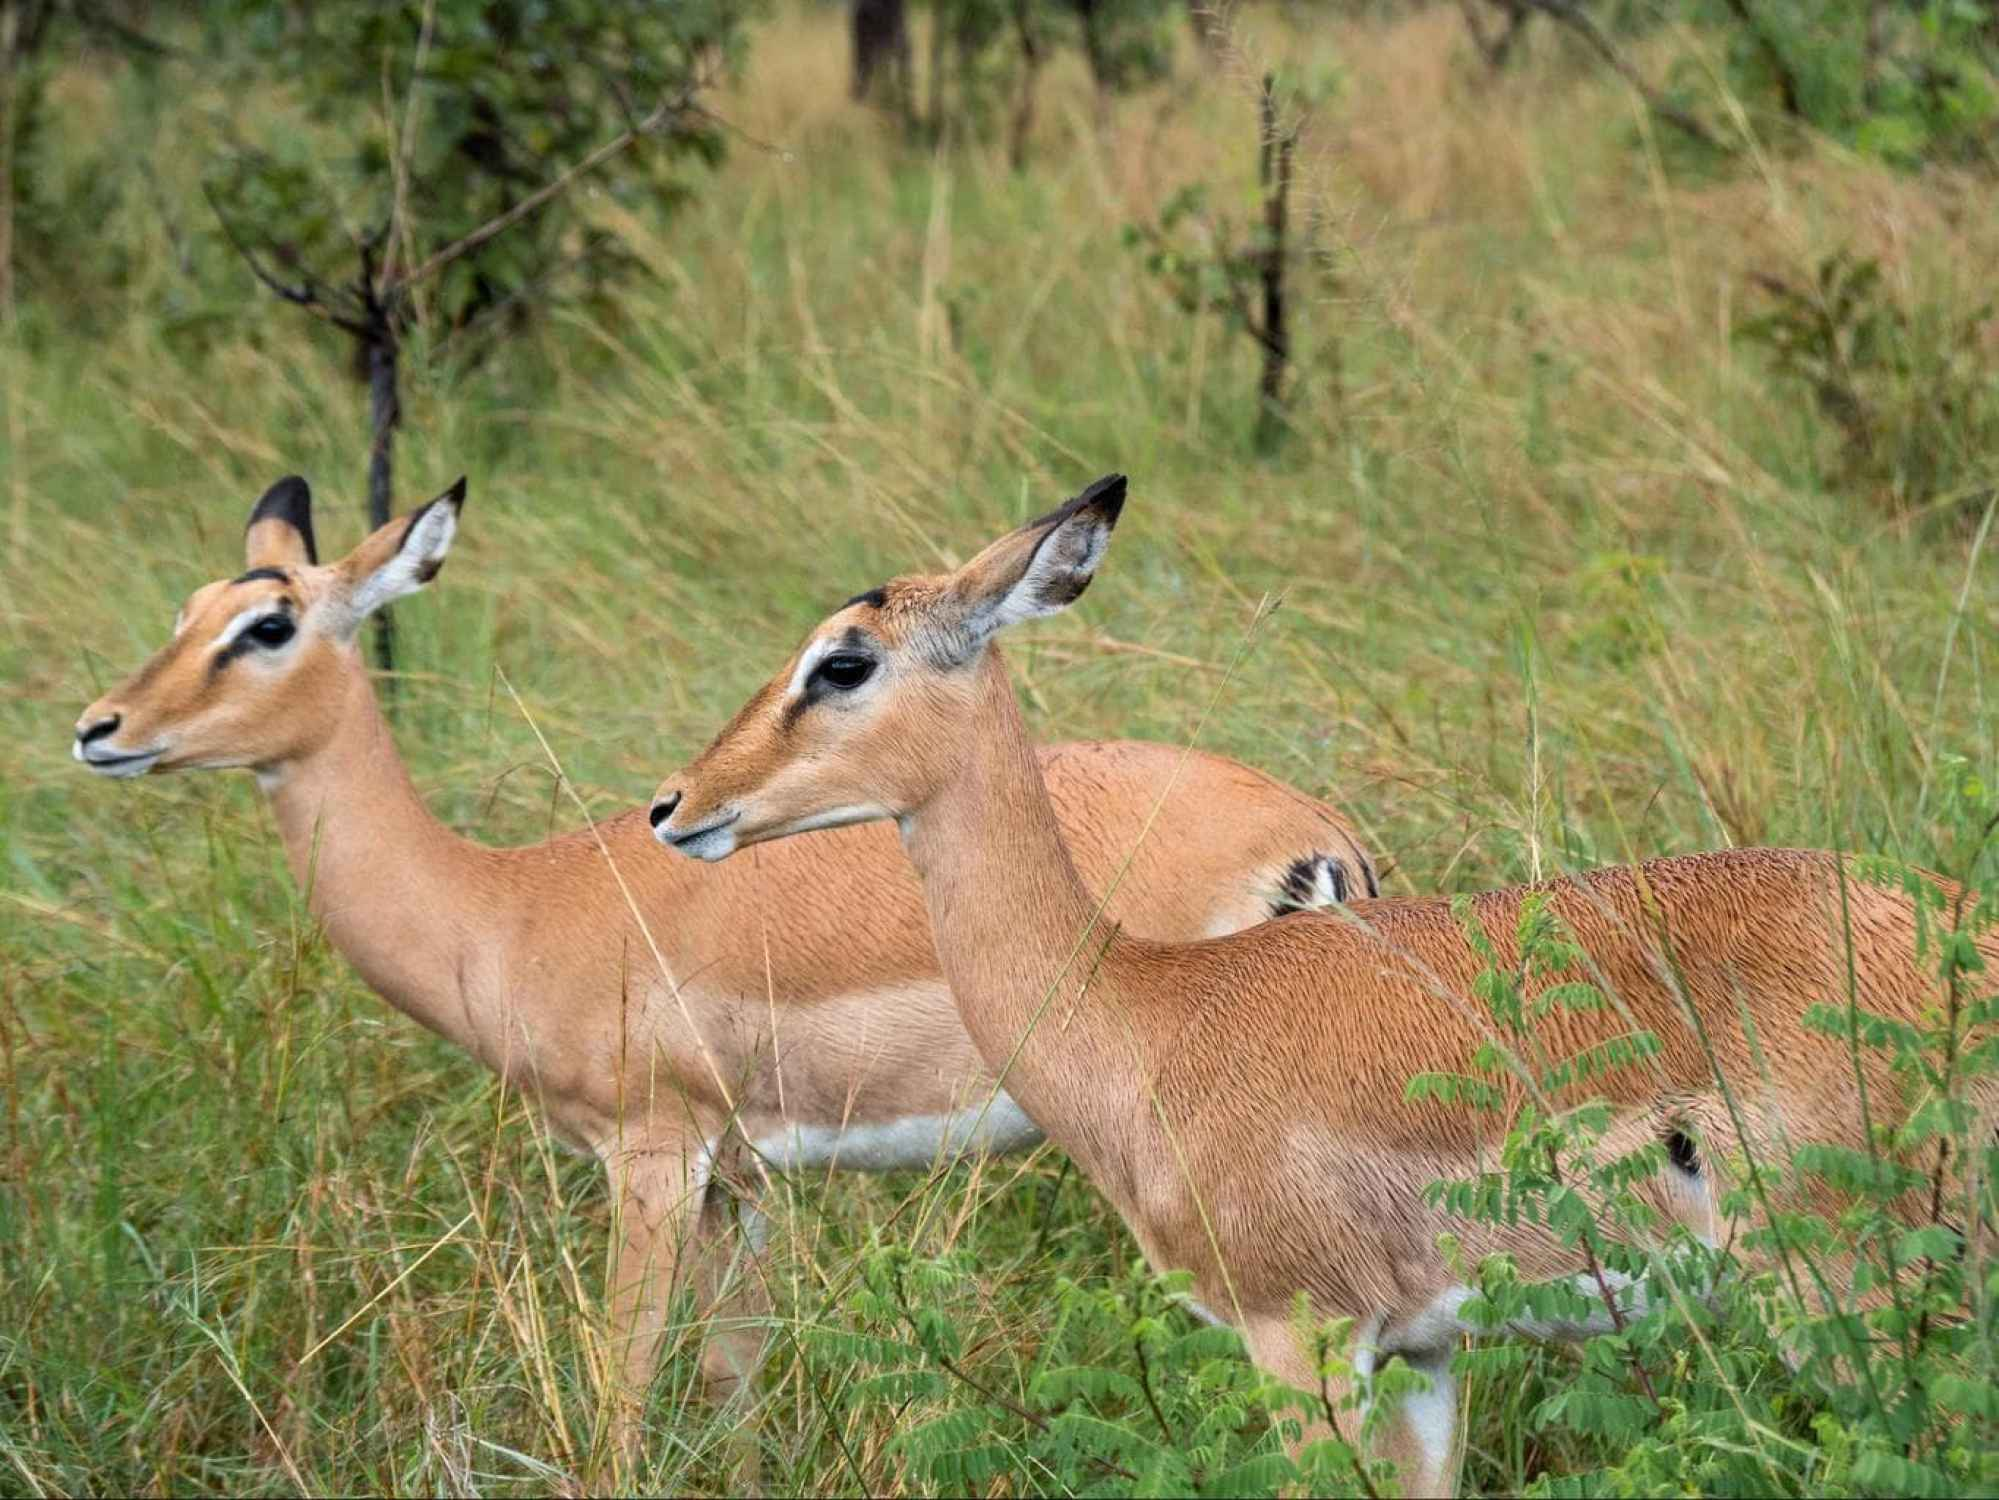 The deer in Akagera National Park